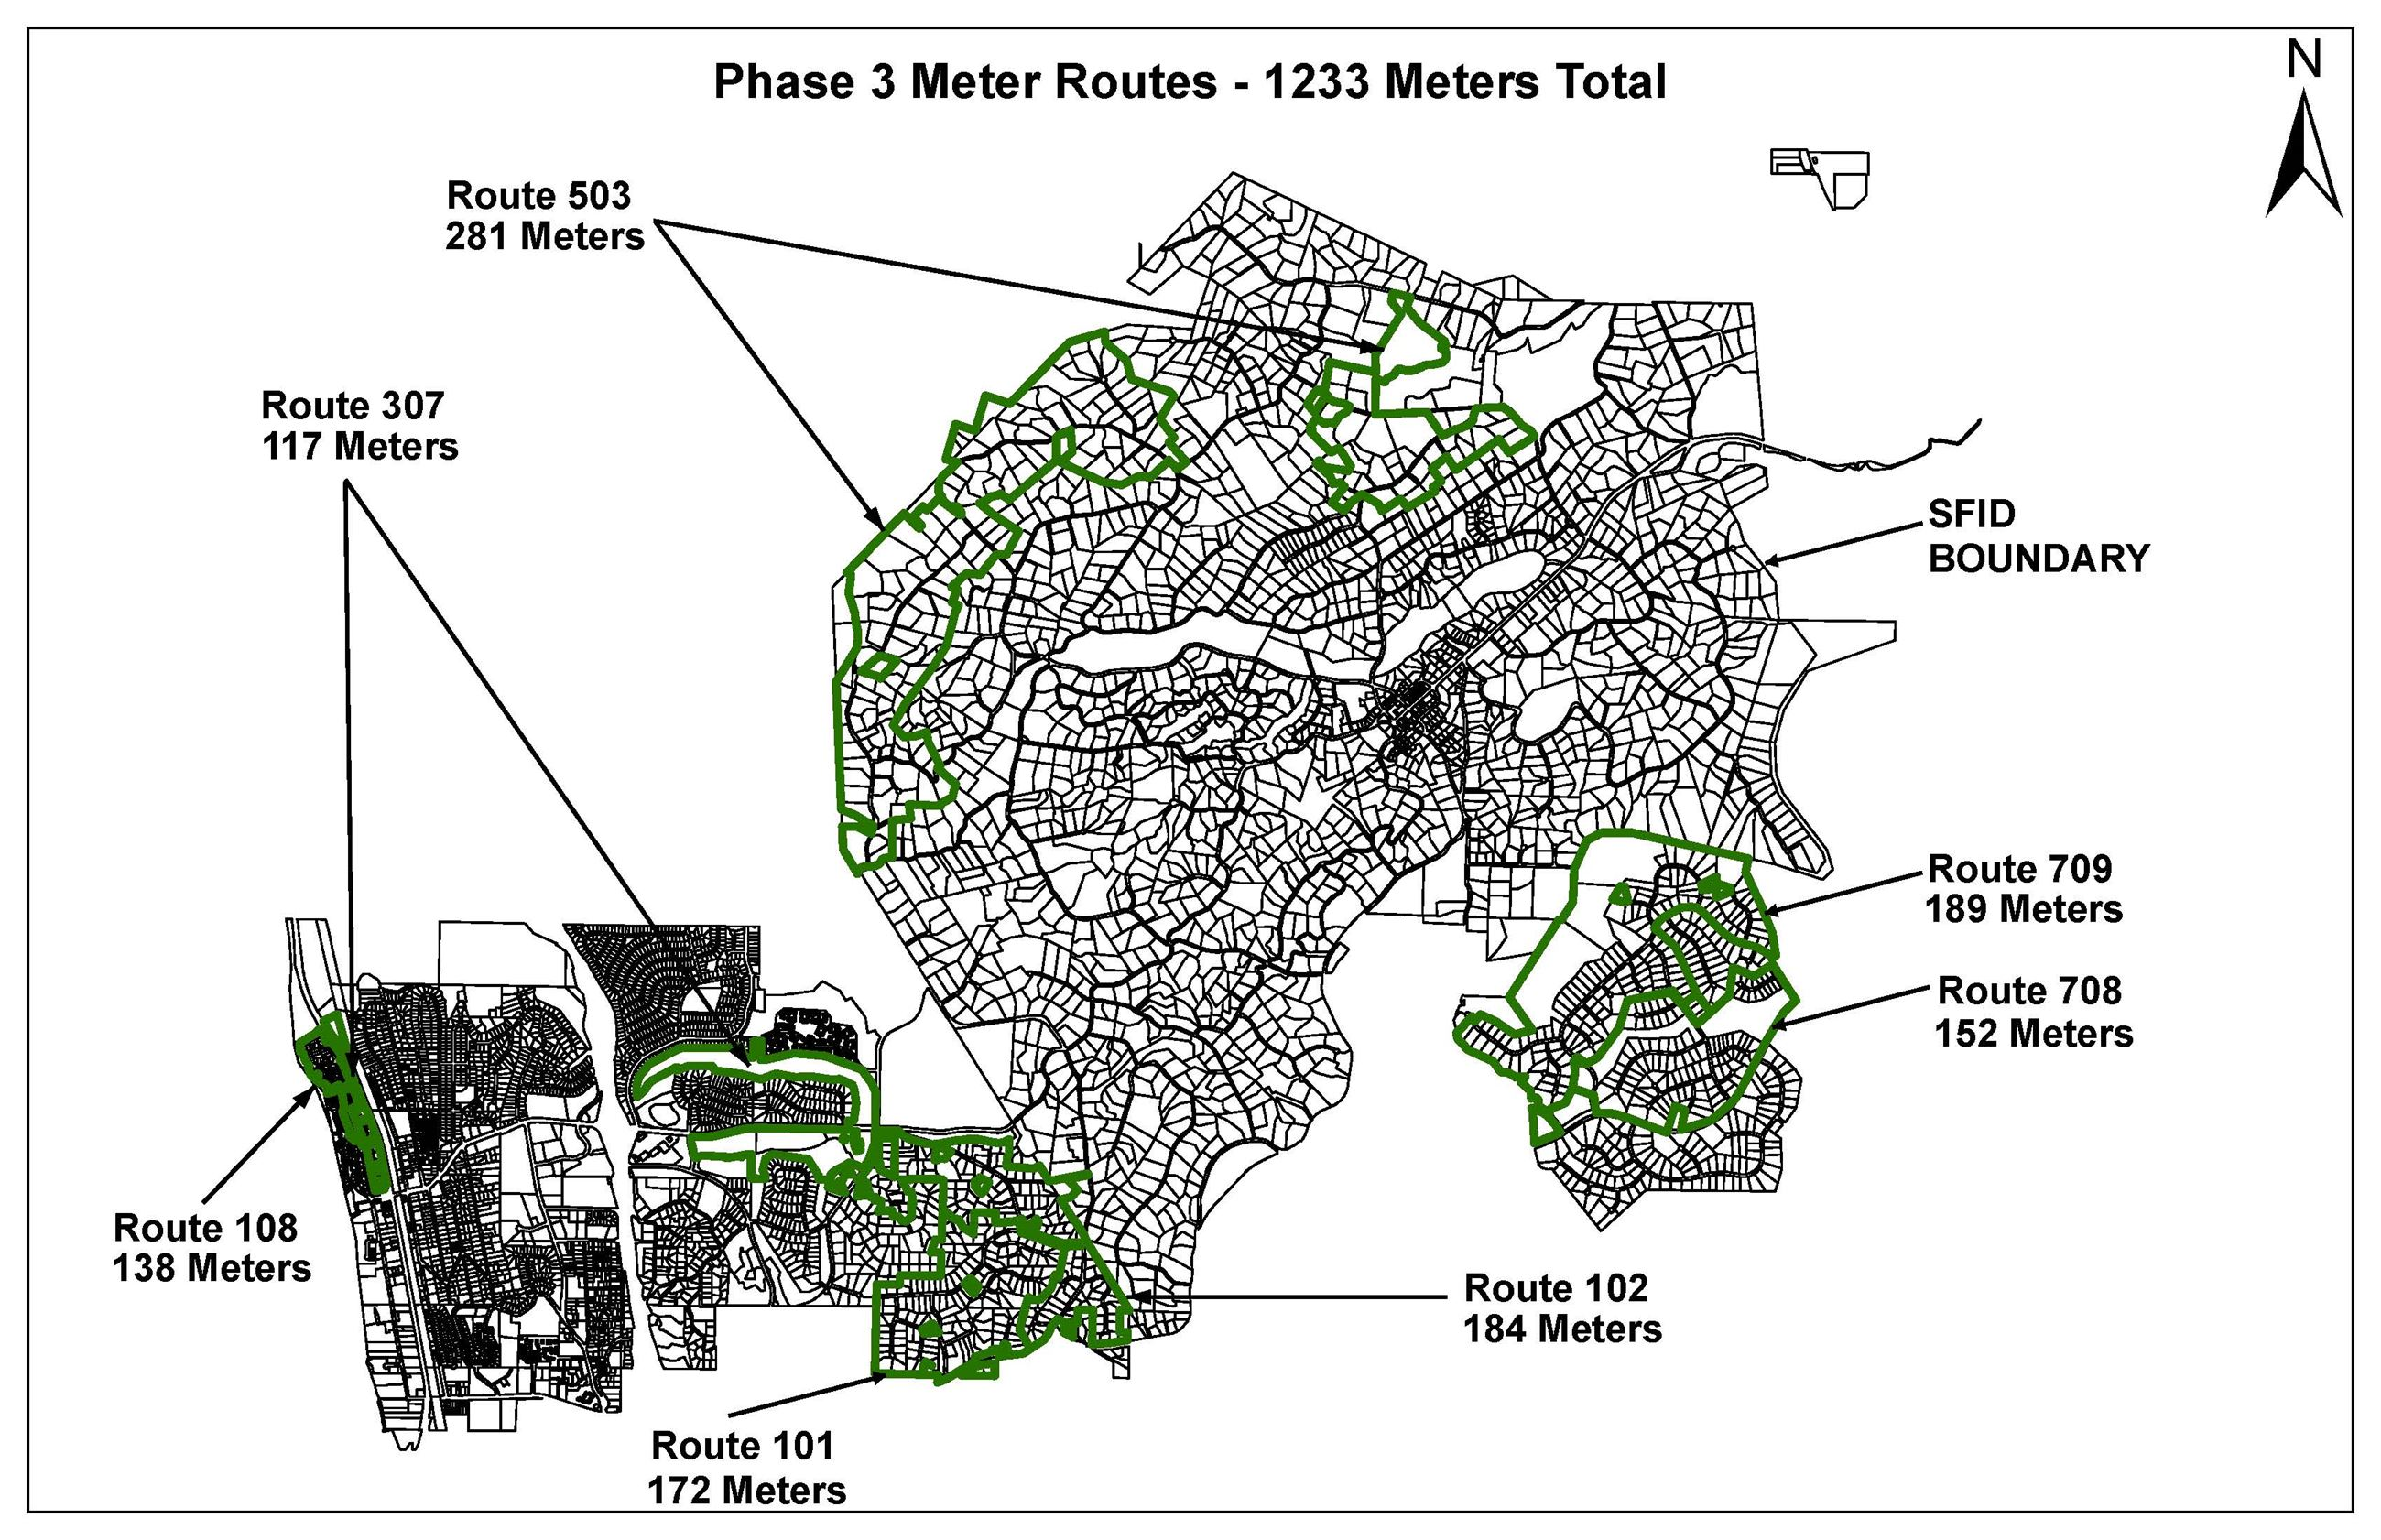 Map of the locations phase 3 will be installing meters